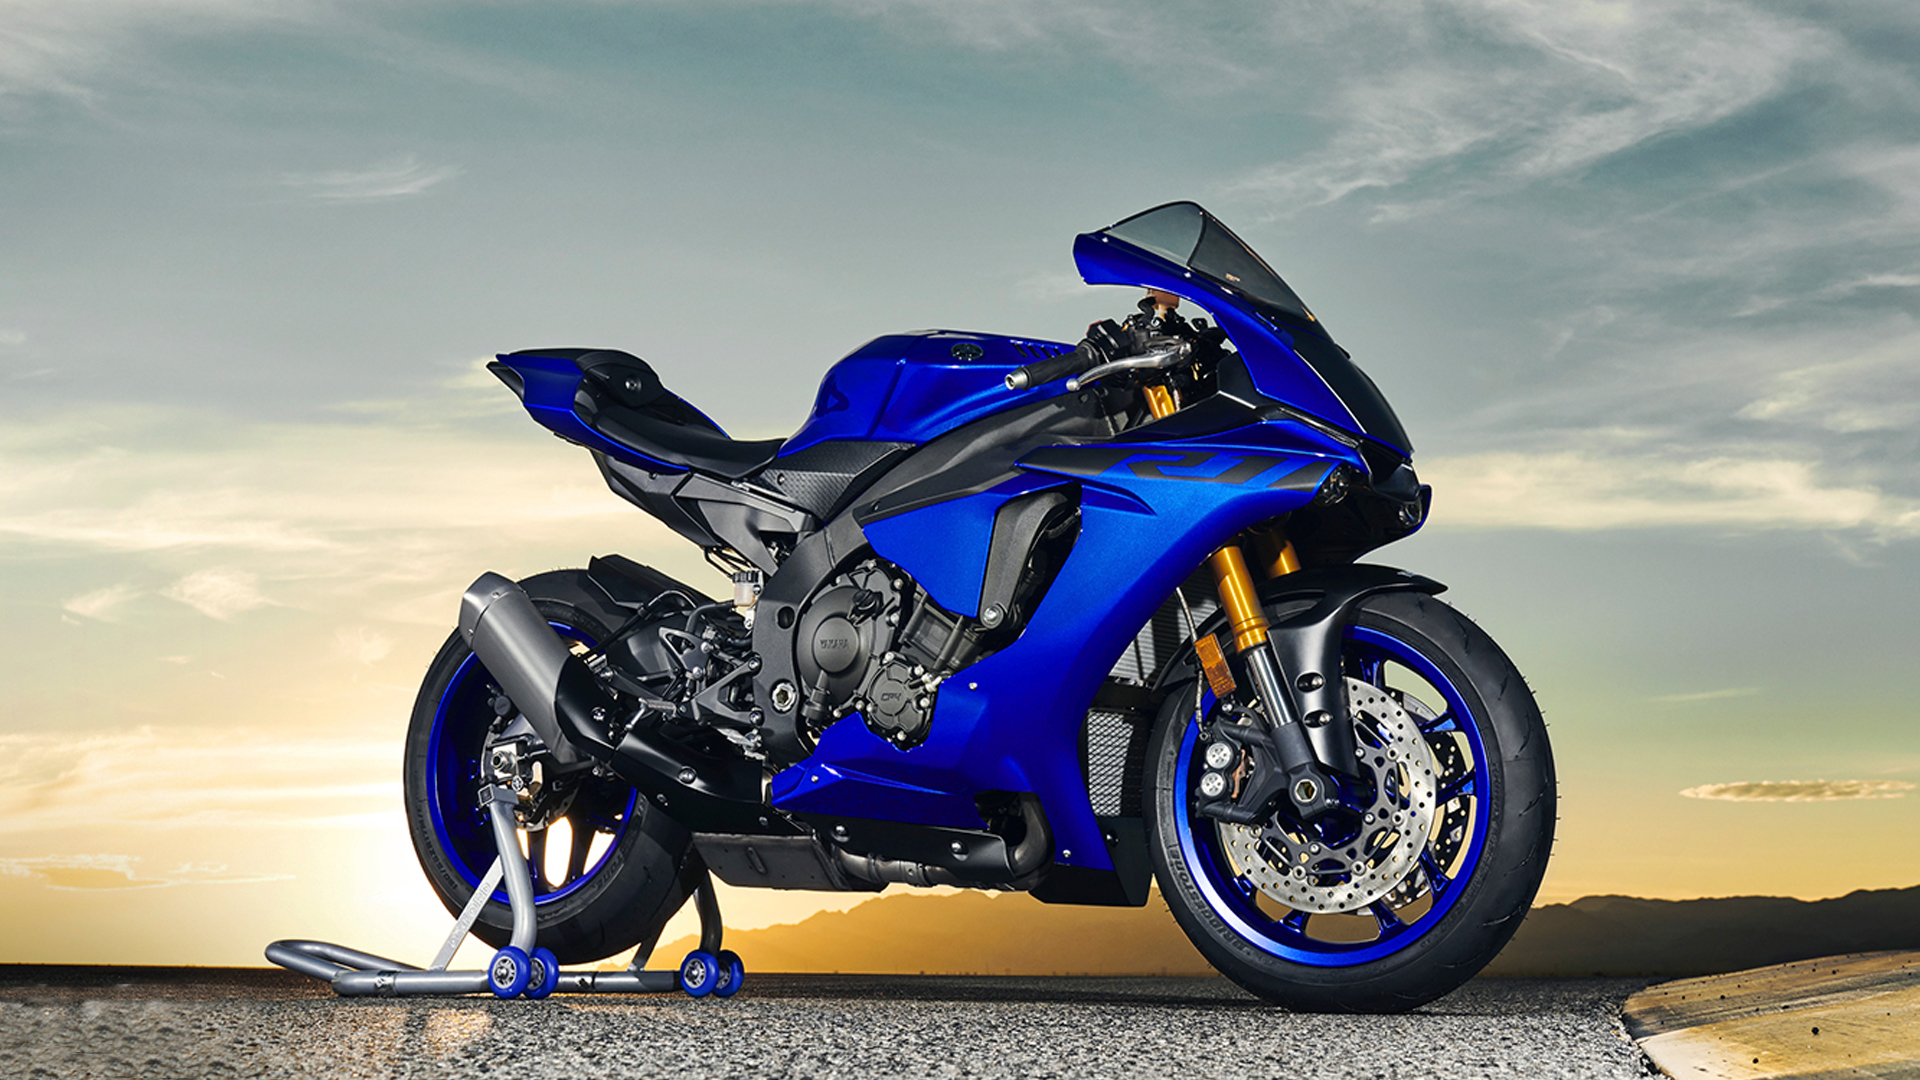 Yamaha Yzf R1 2018 Price Mileage Reviews